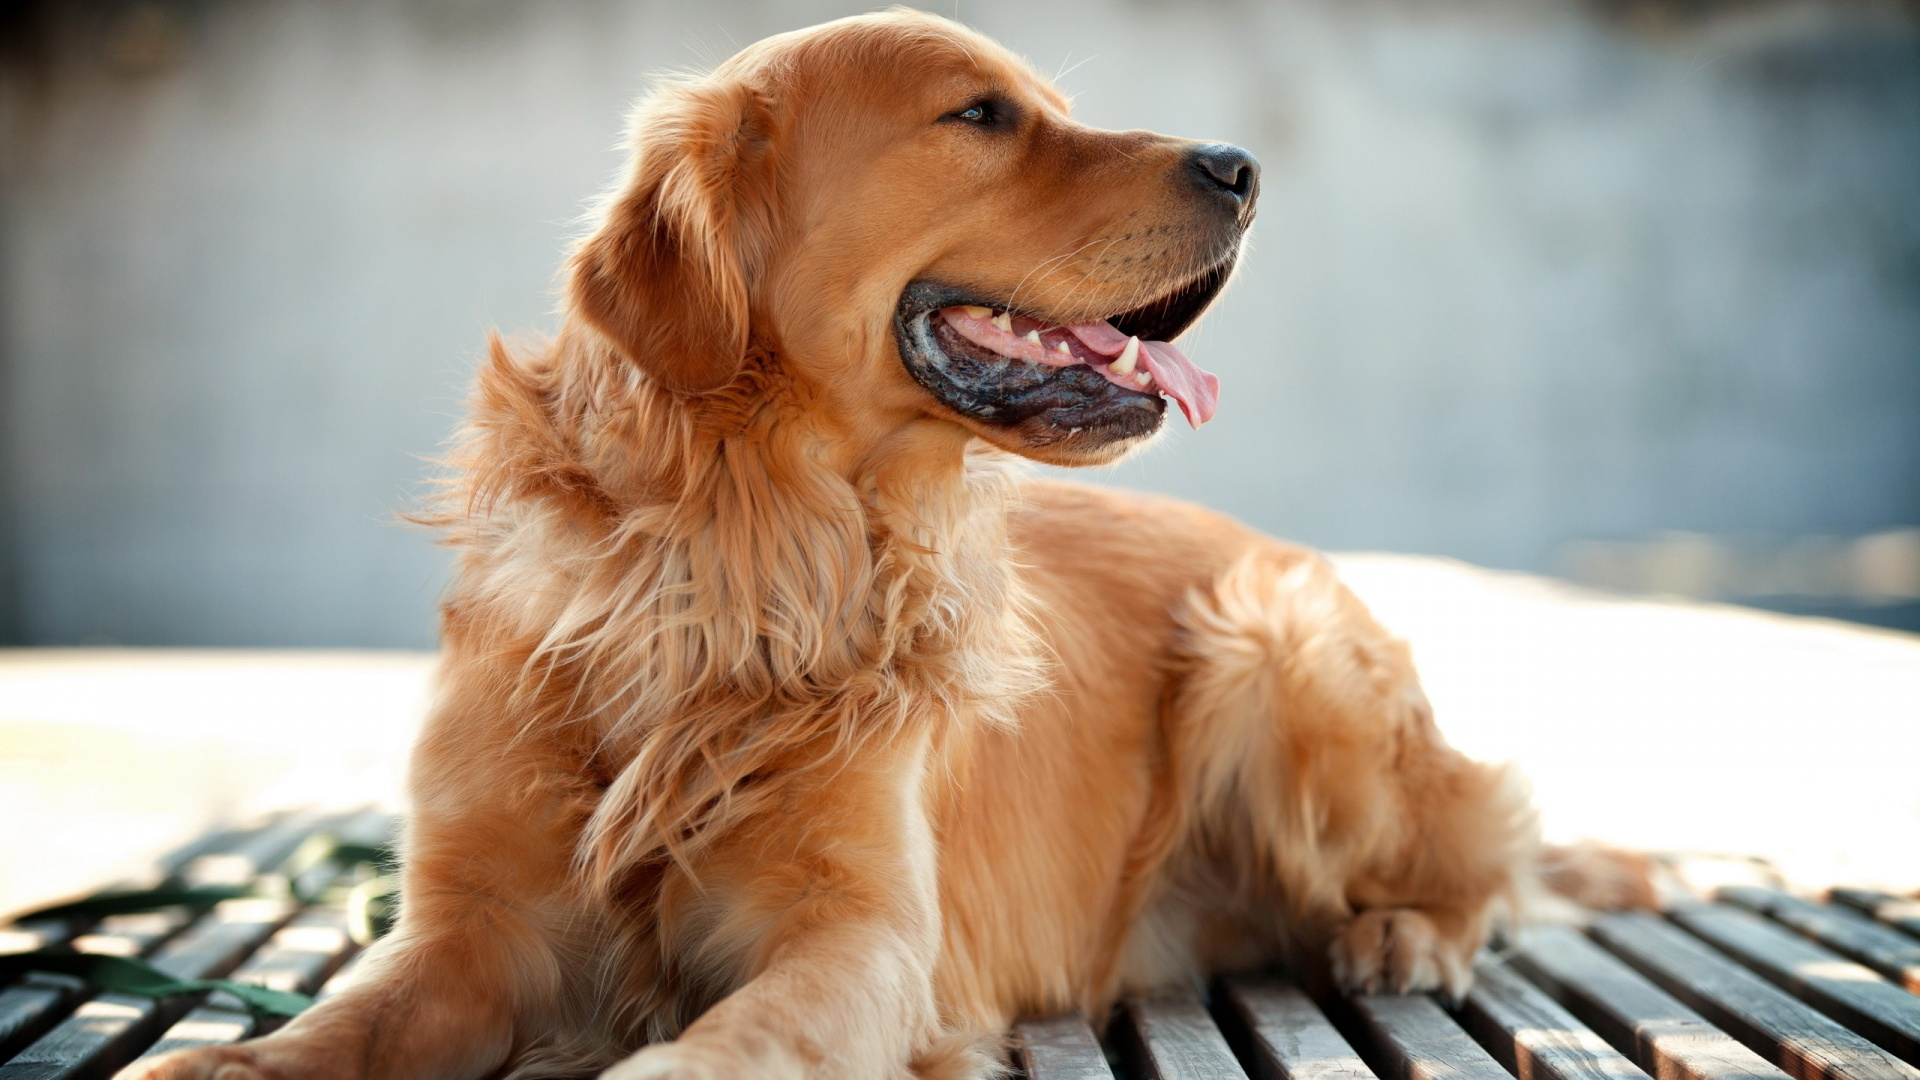 golden retriever dog wallpapers in jpg format for free download